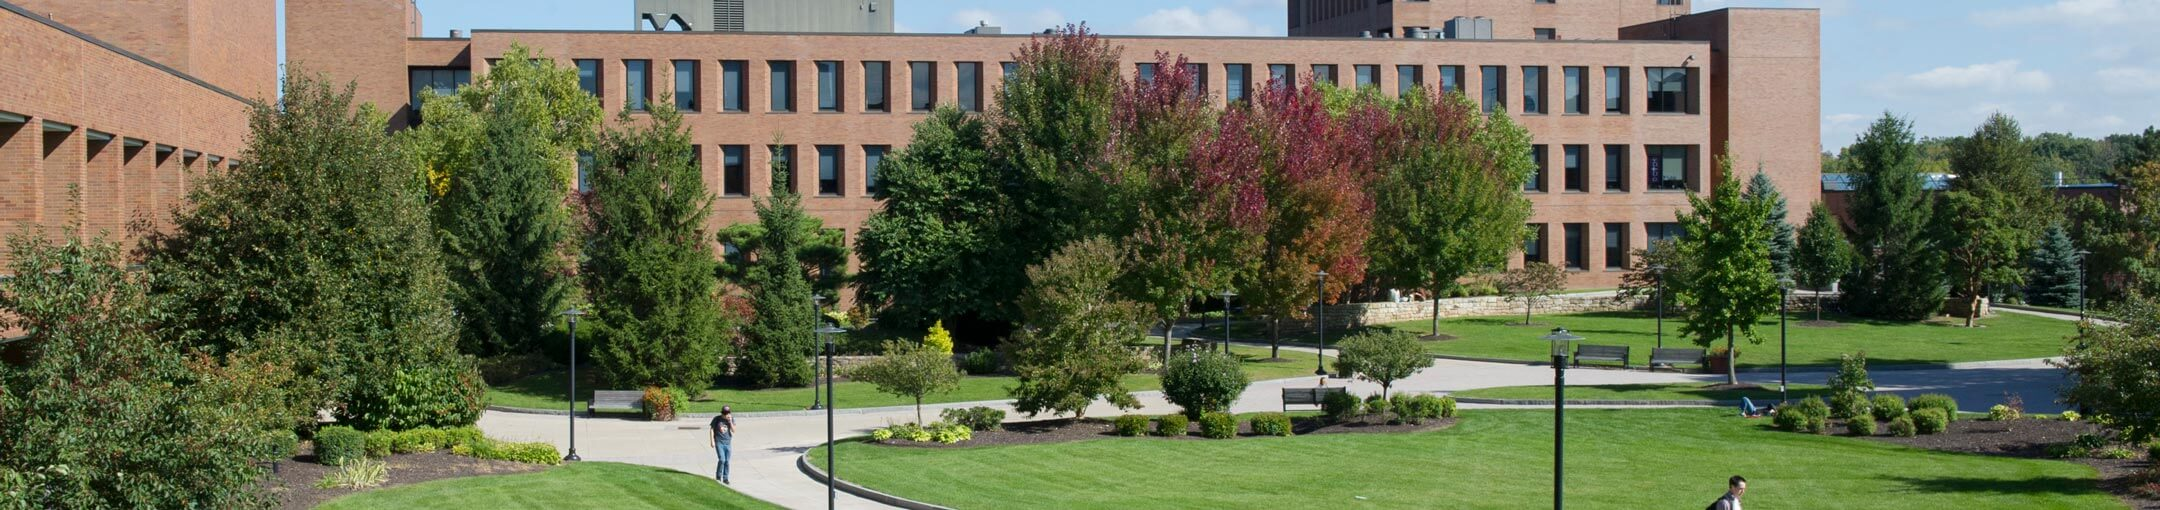 View of RIT campus with several trees and bushes in front of a brick building.